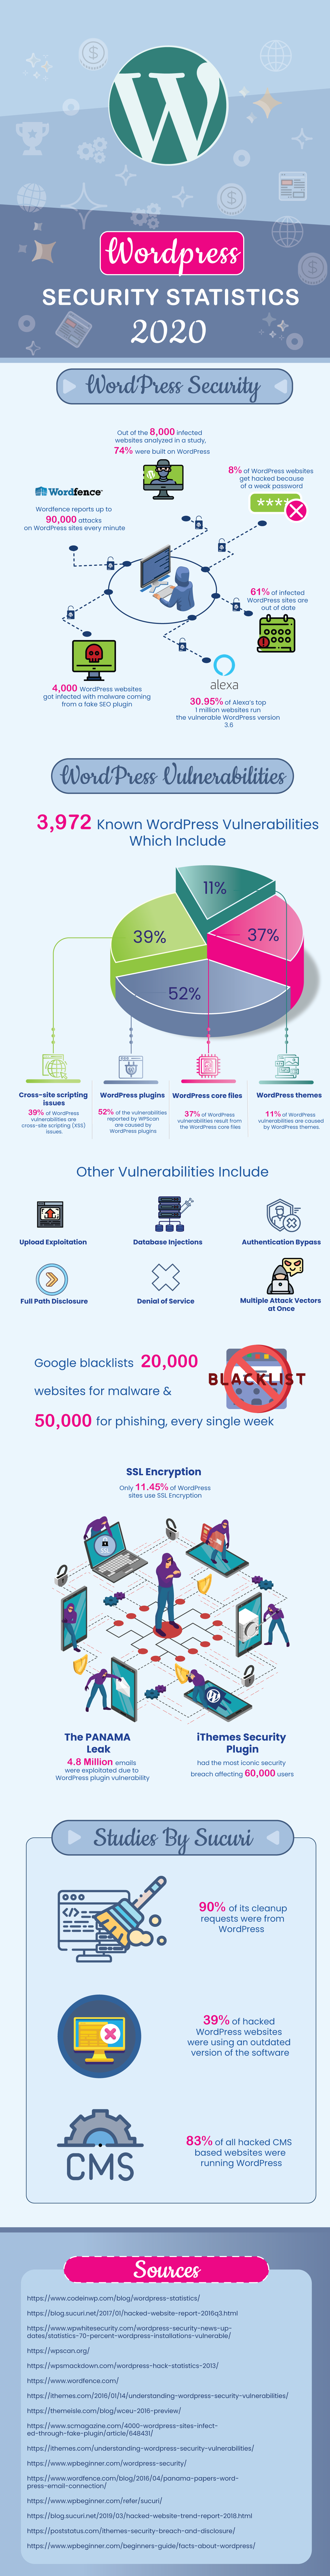 WordPress security statistics for 2020